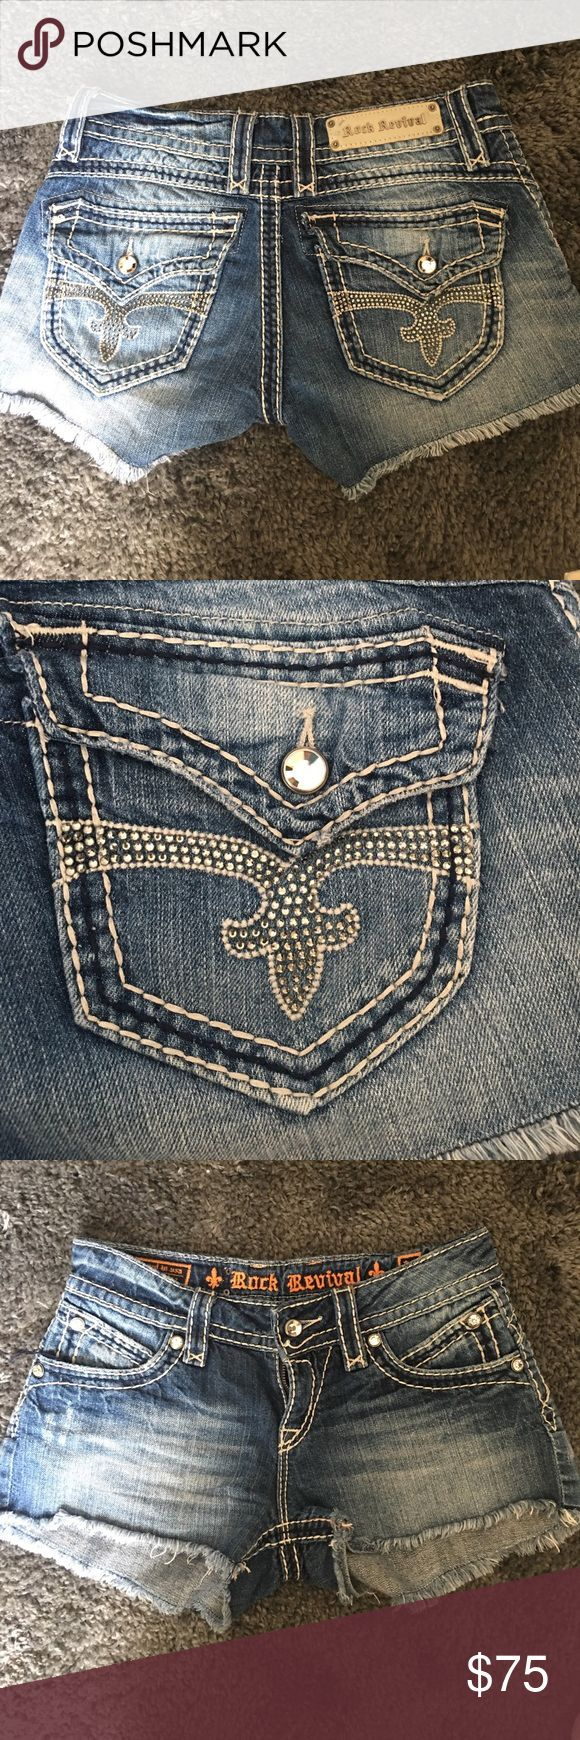 Rock Revival Shorts. Buckle Exclusive Super cute Bling Rock Revival shorts. Perfect for summertime. Mint condition. Style: Scarlett Rock Revival Shorts Jean Shorts